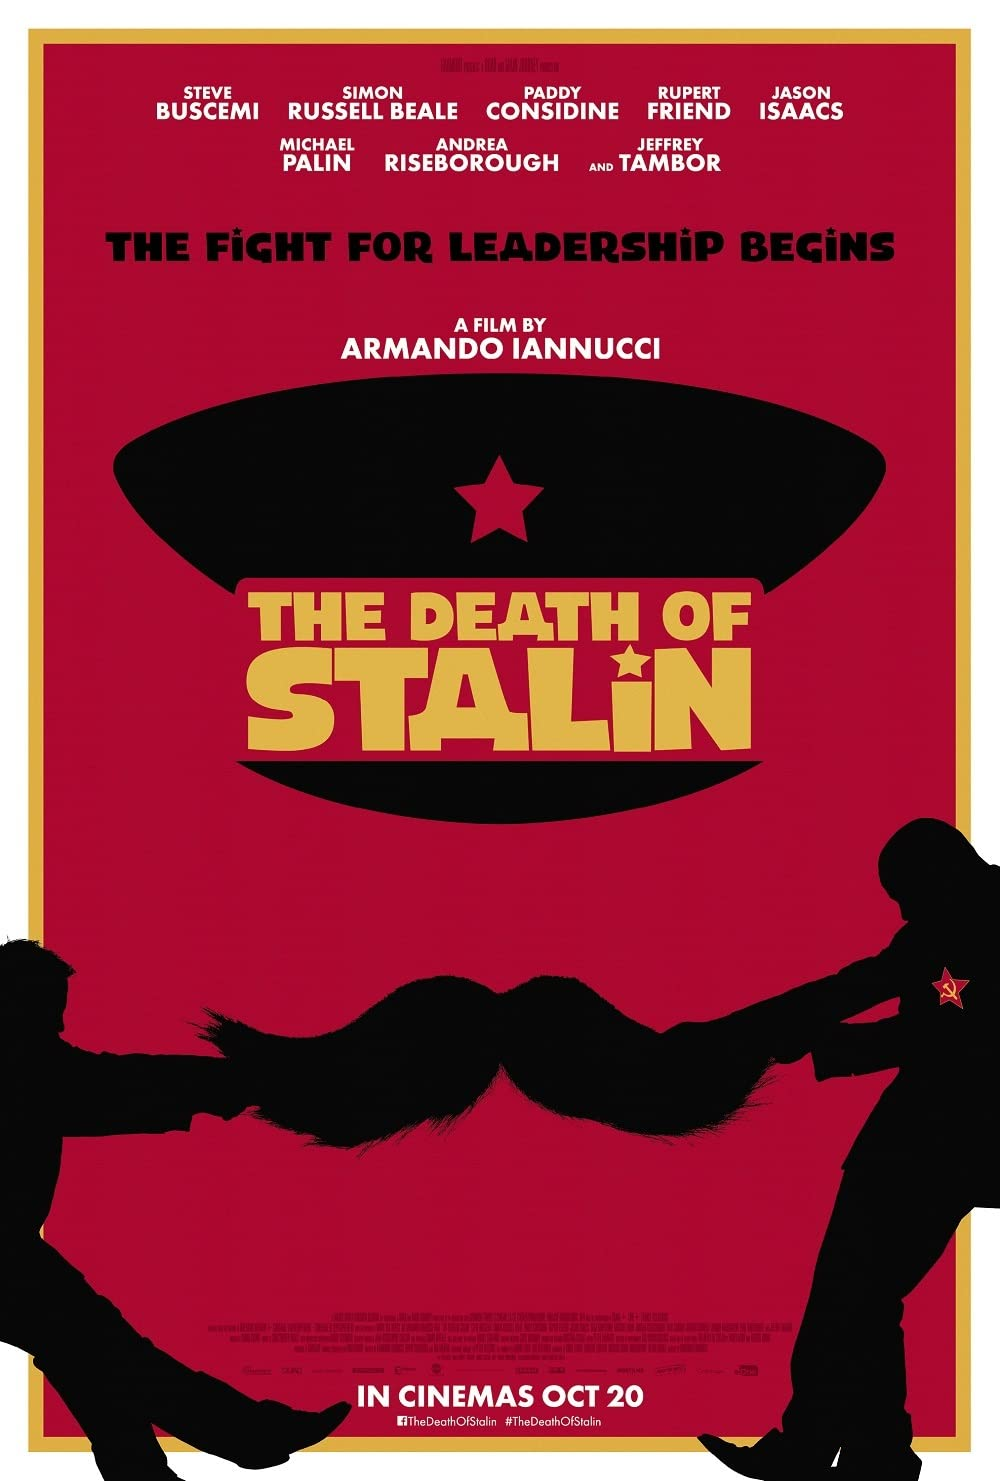 The Death of Stalin: Everybody wants a piece